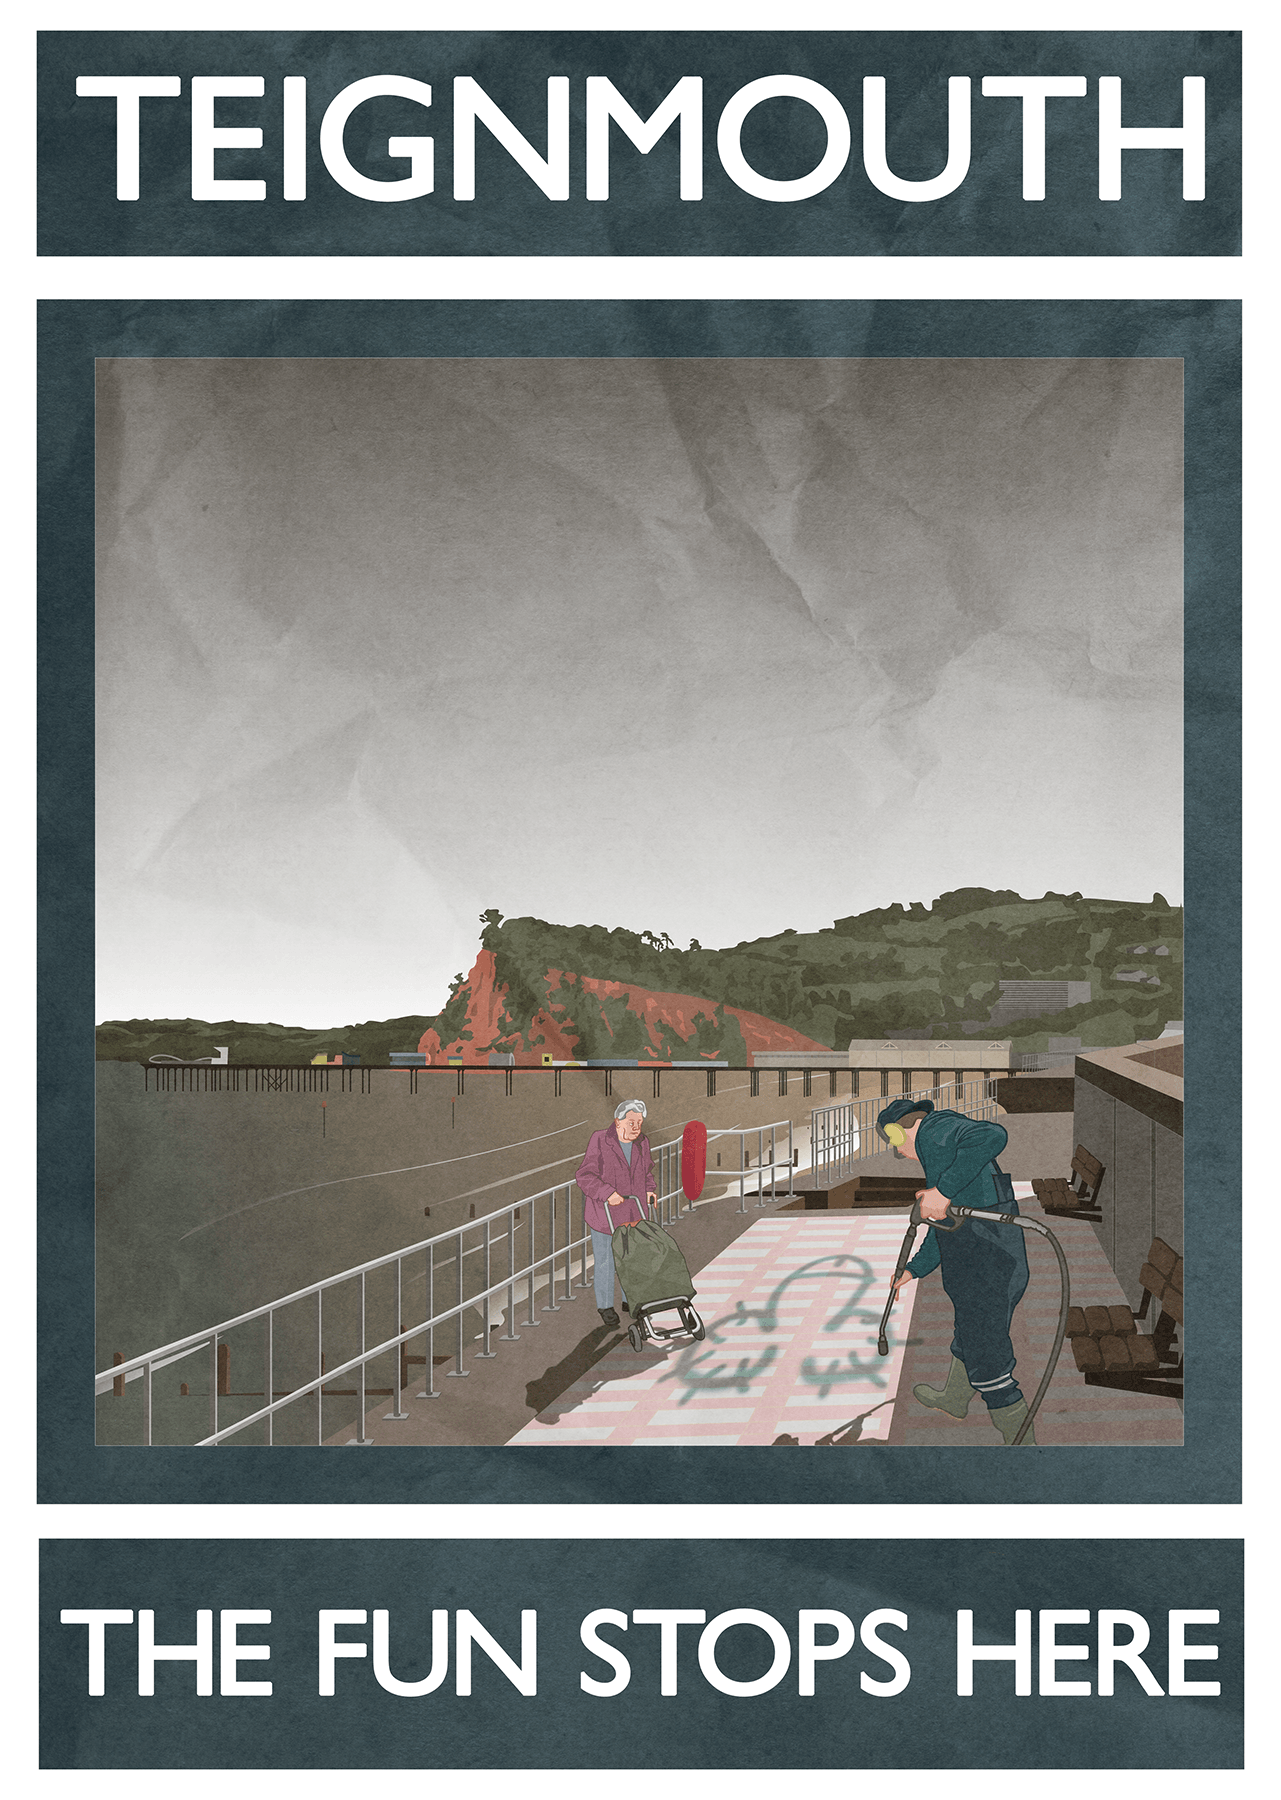 Jack Hurley Teignmouth poster